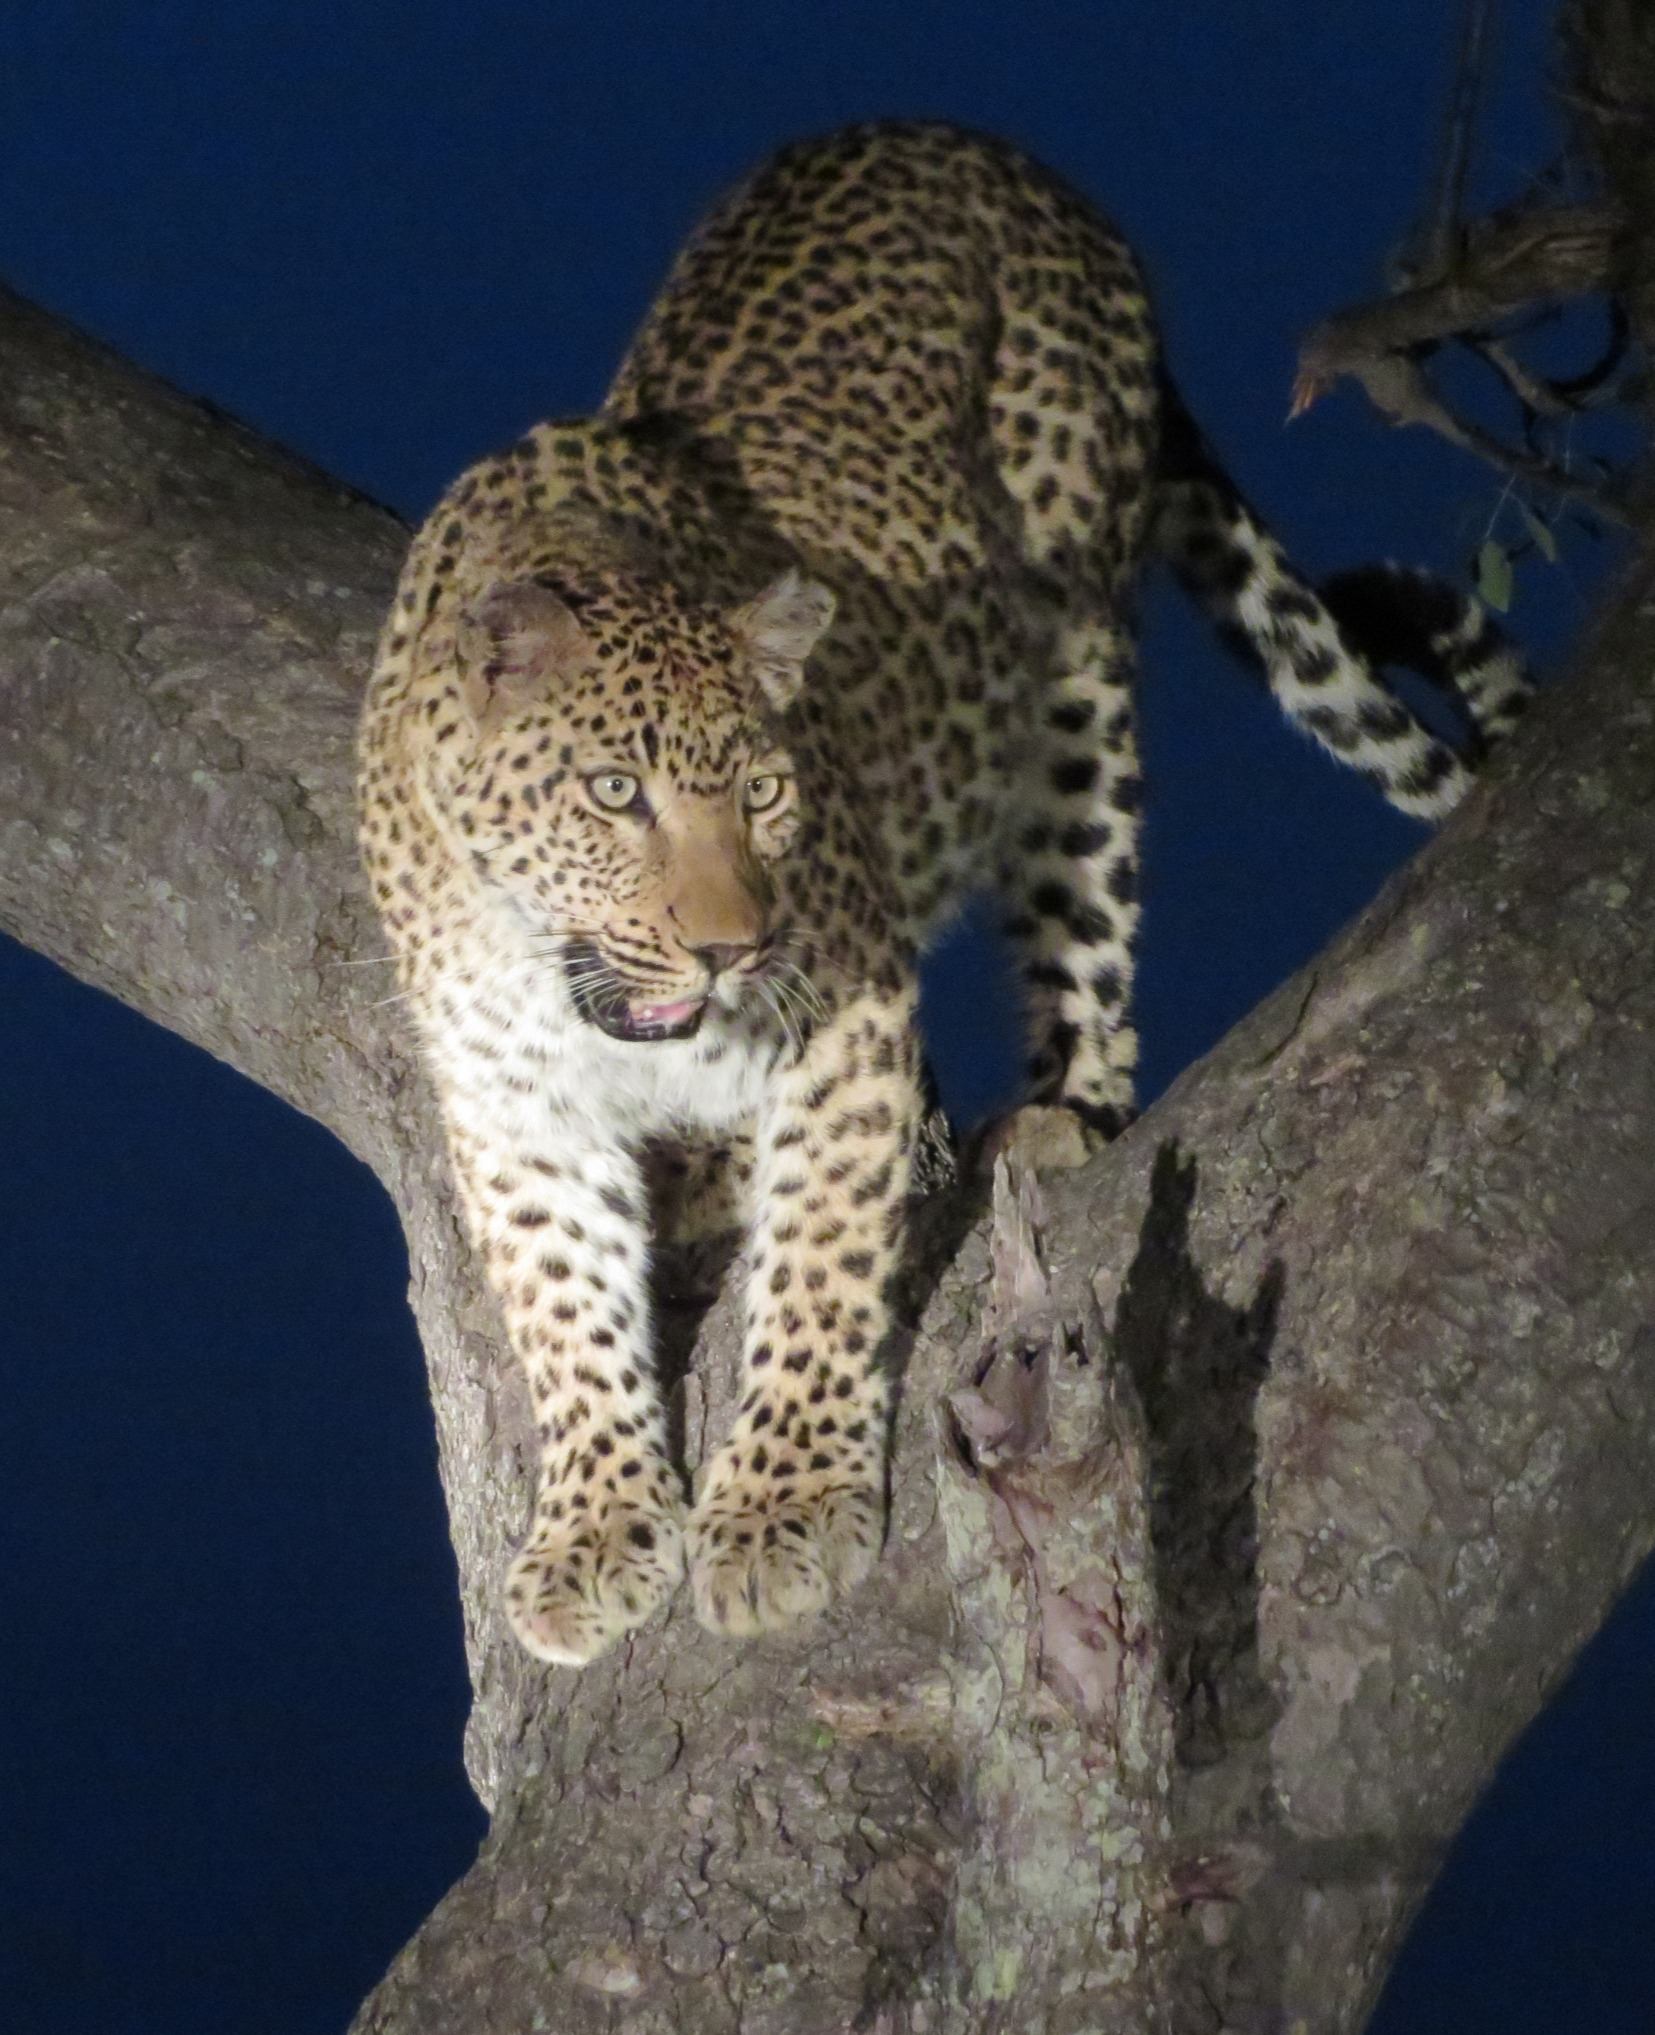 Makanyi female leopard hides in tree fro